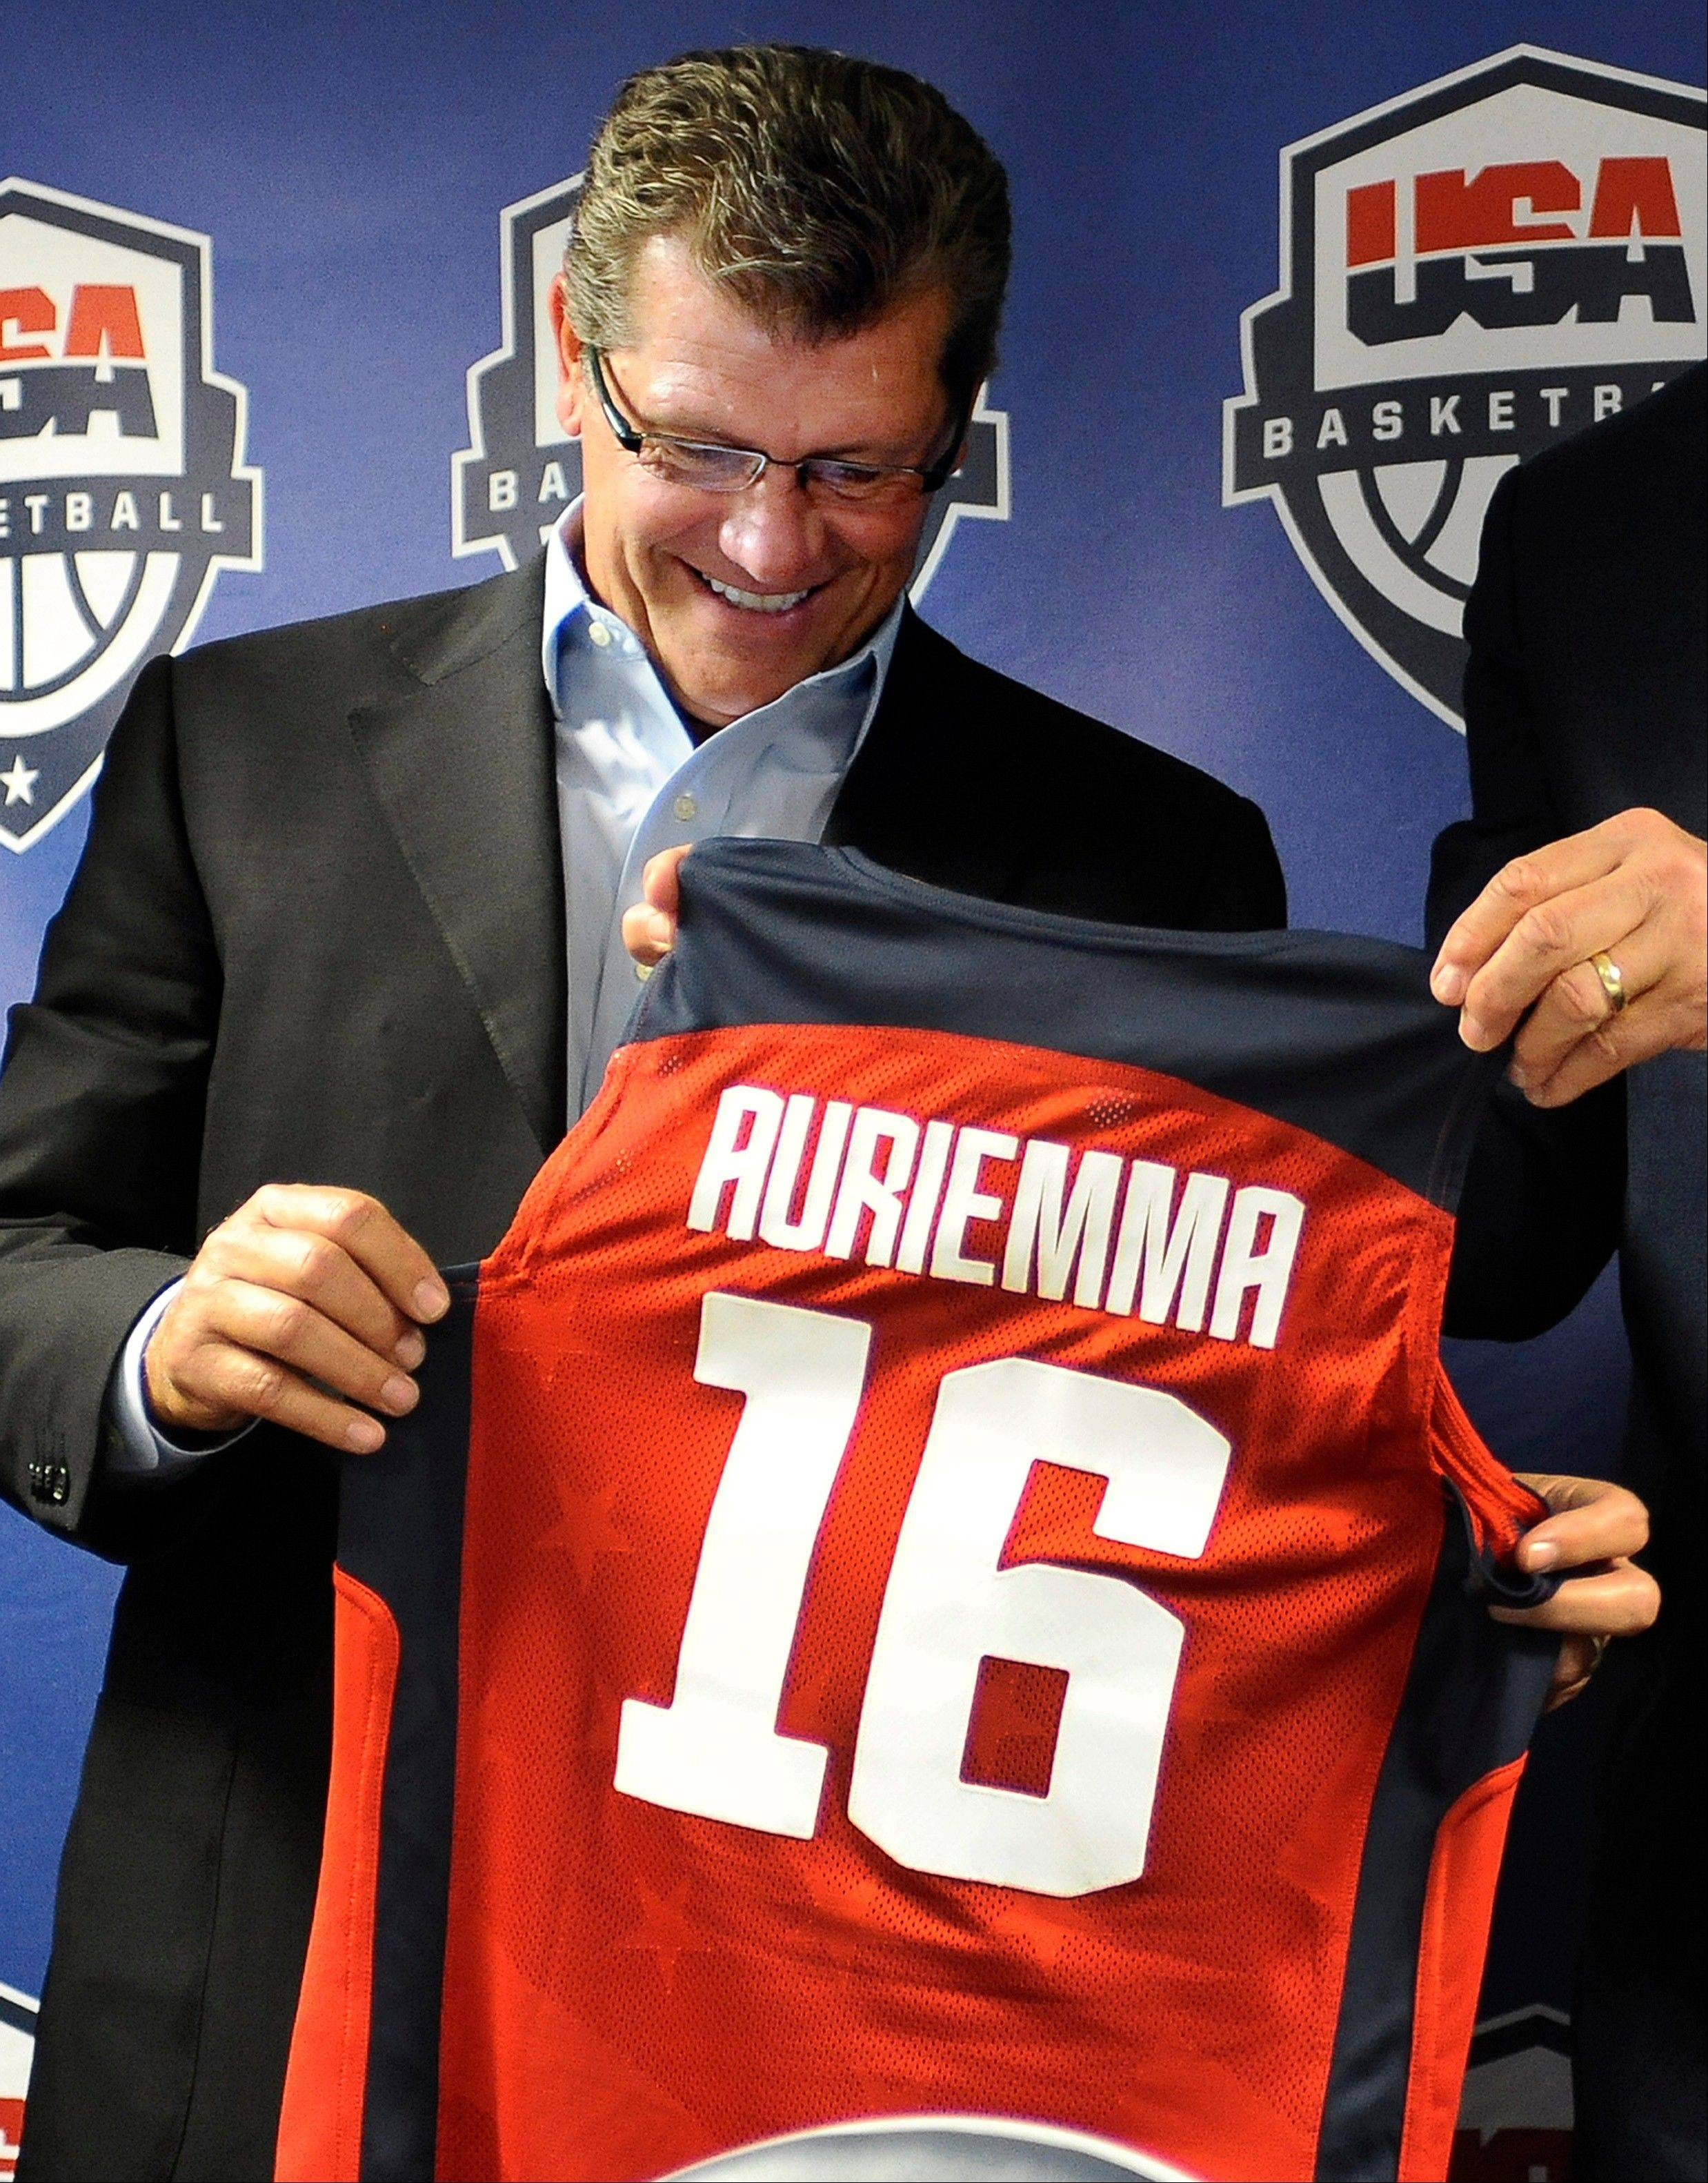 Connecticut head coach Geno Auriemma smiles after receiving a team jersey Friday at a news conference announcing he will head the U.S. women�s basketball team at the 2016 Rio de Janeiro Olympics.